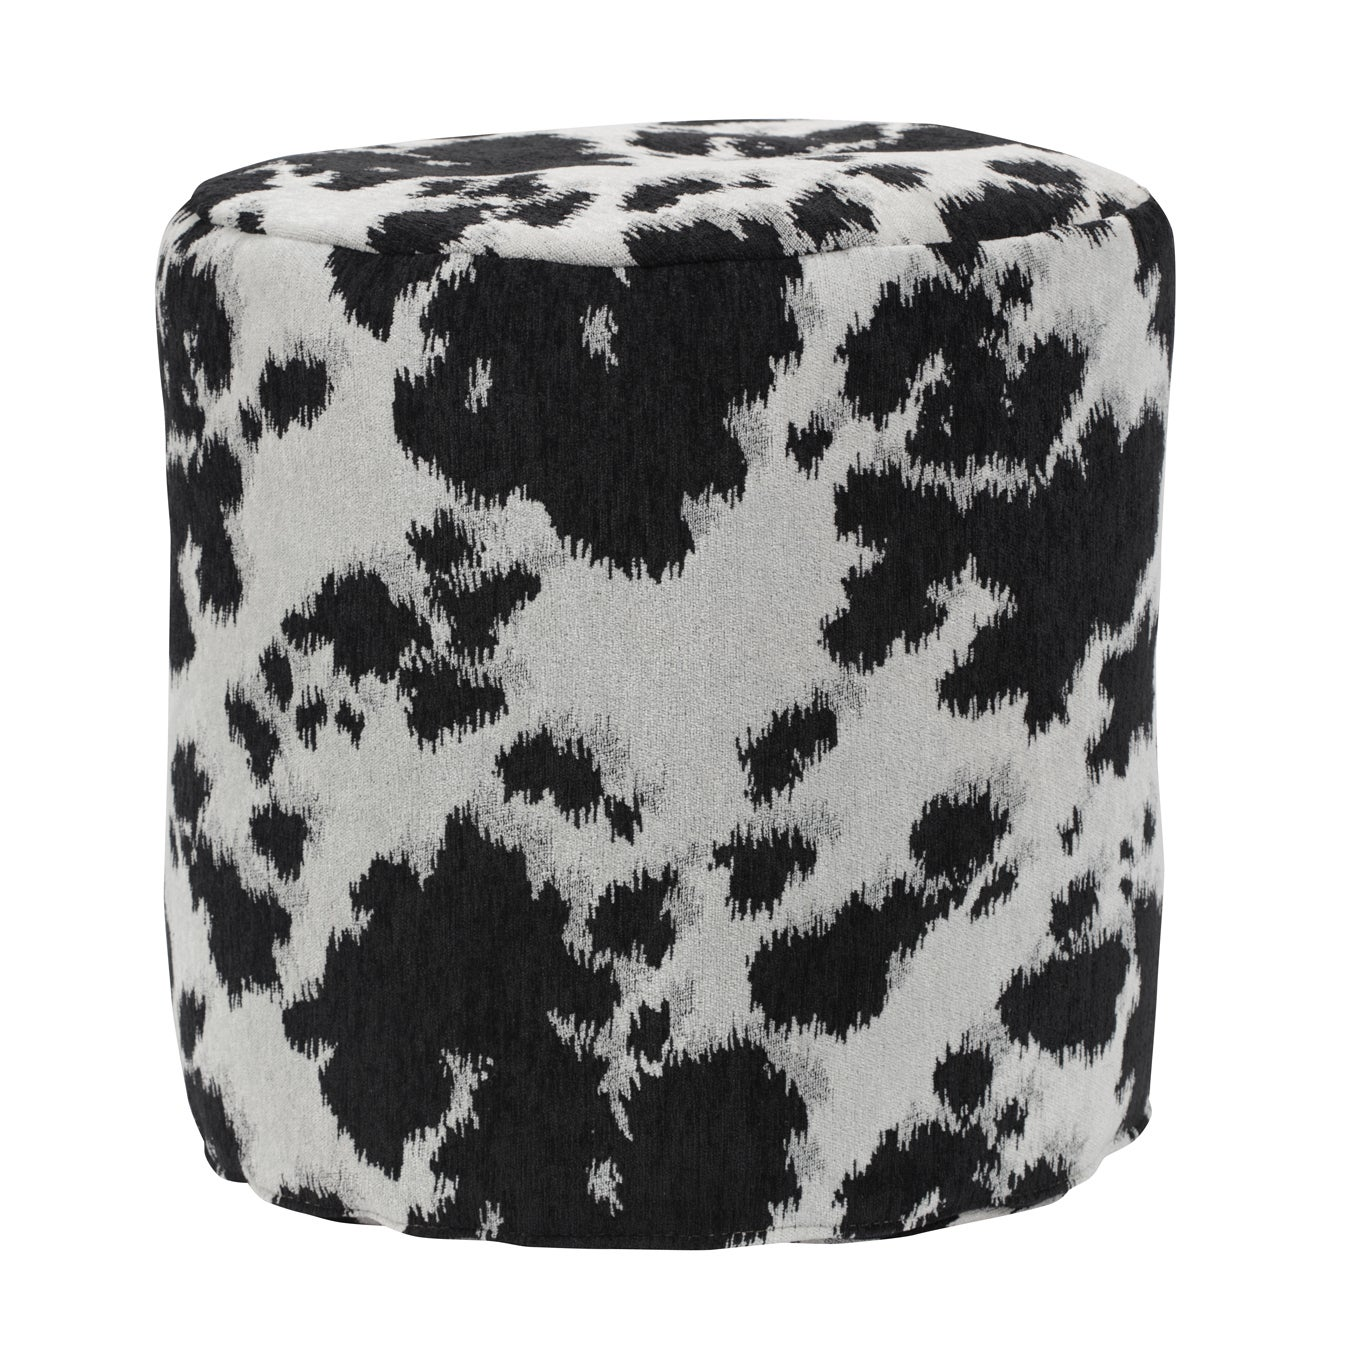 Black Cow Udder Madness Pouf Ottoman - Free Shipping Today ...